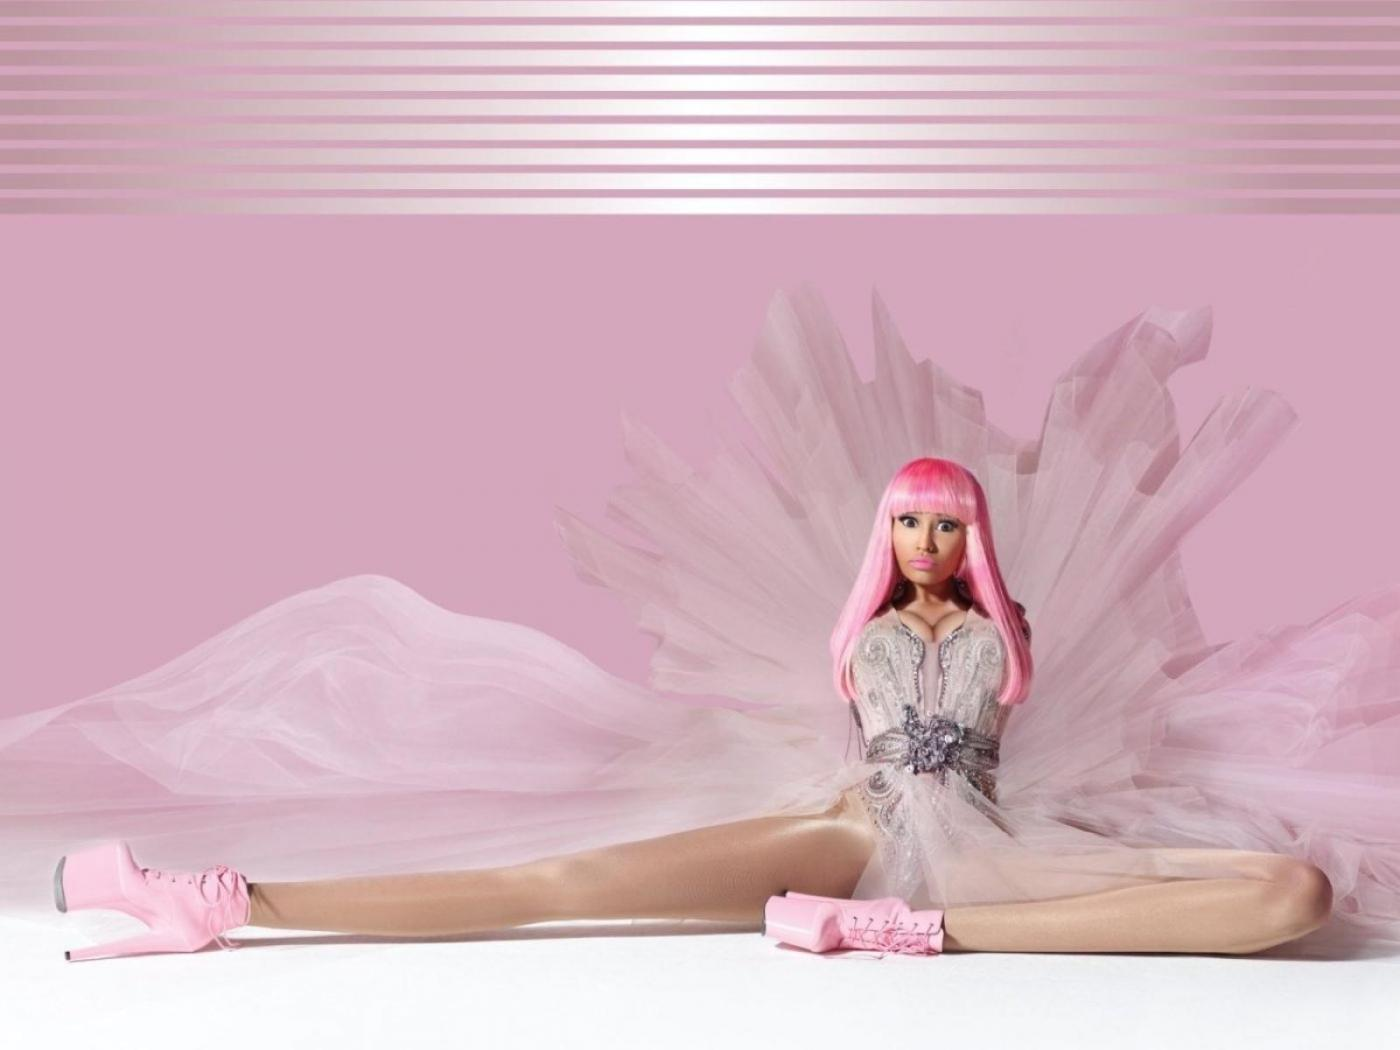 Nicki Minaj Hot 1400×1050 Wallpapers, 1400×1050 Wallpapers & Pictures Wallpaper